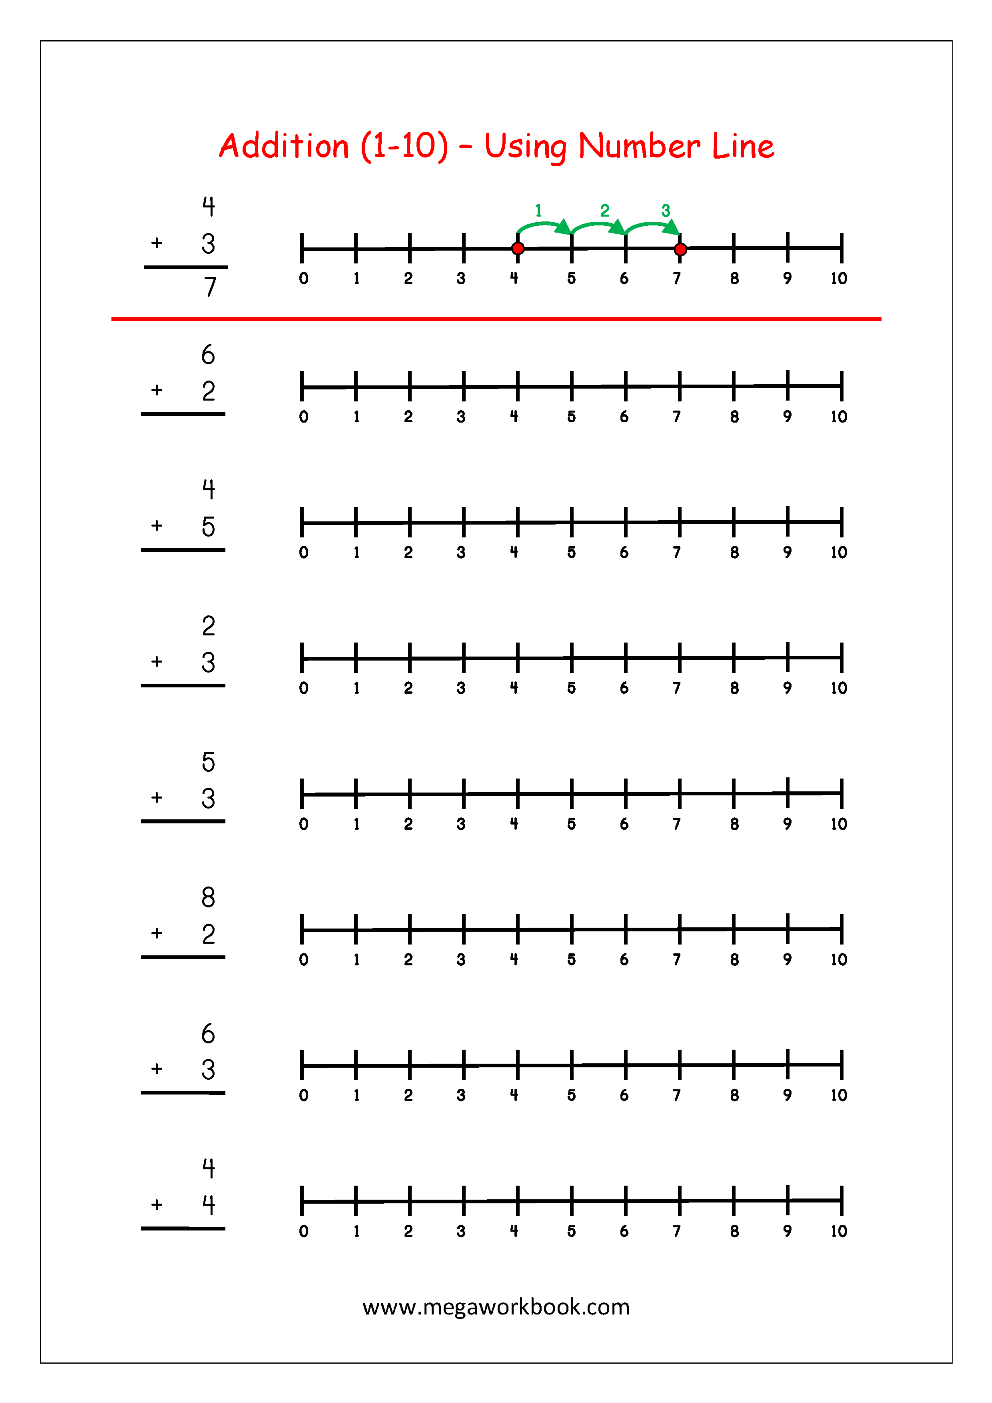 Worksheets Addition Using Number Line httpmegaworkbook – Subtracting 0 1 2 Worksheets